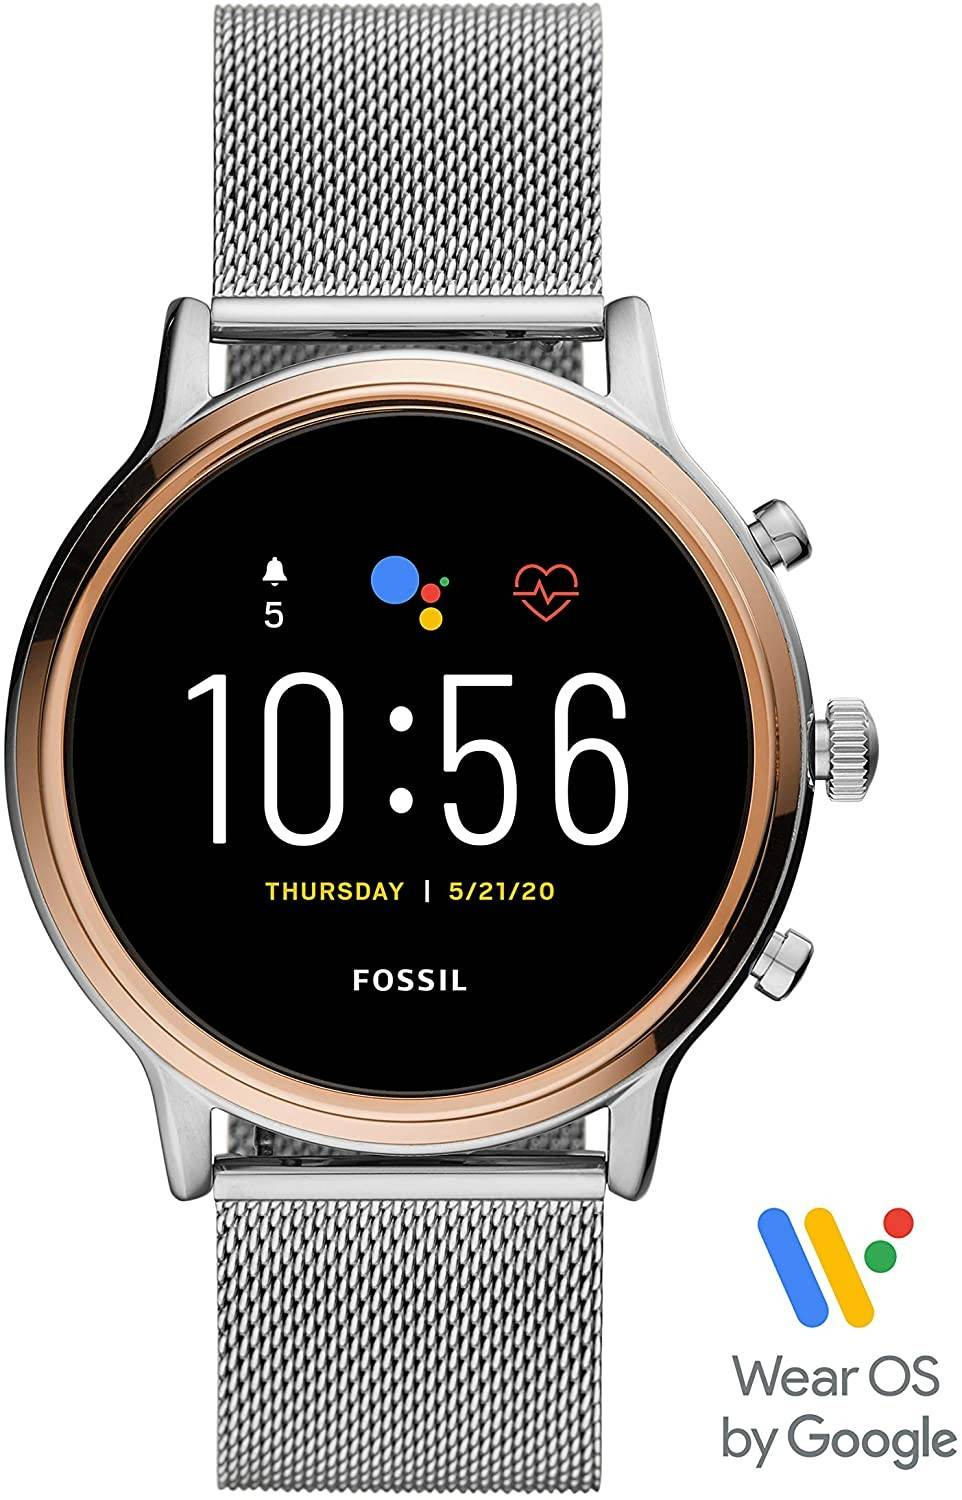 Fossil Gen 5 Julianna Stainless Steel Touchscreen Smartwatch With Speaker, Heart Rate, GPS, NFC, And Smartphone Notifications - 2071MALL